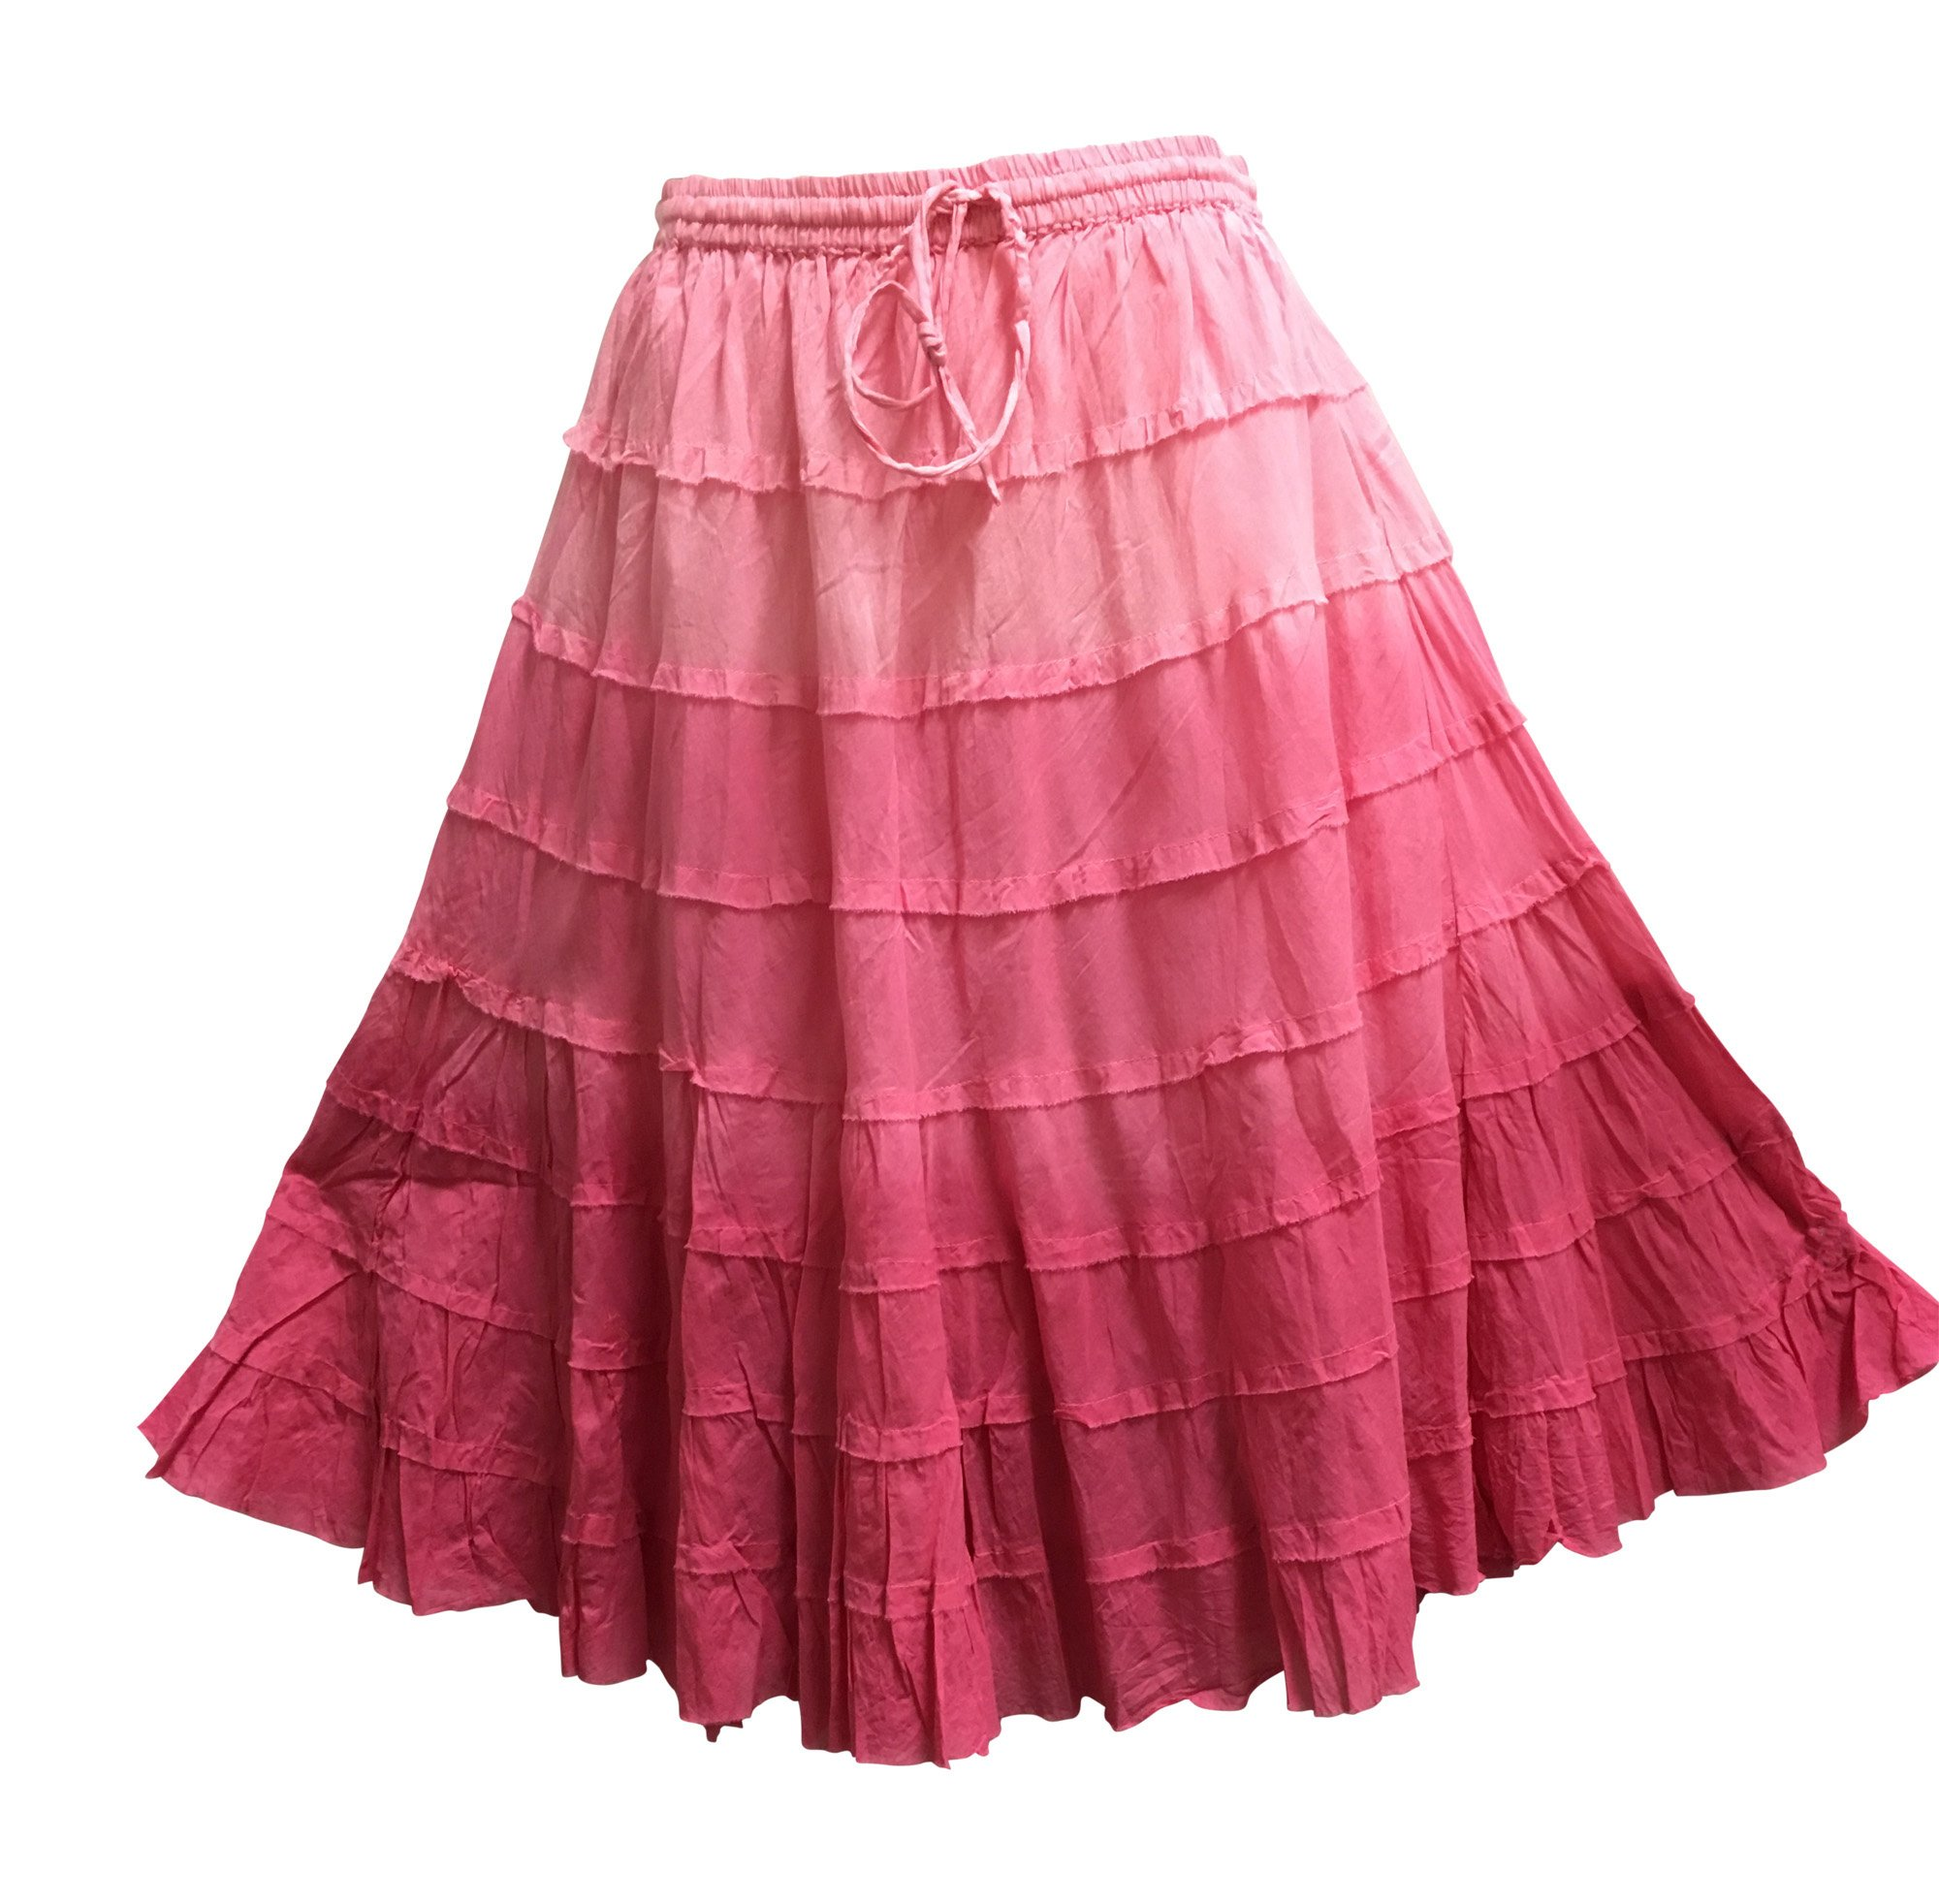 Yoga Trendz Missy Plus Bohemian Gauze Cotton Tiered Crinkled Broomstick Skirt Ombre Mid Length (No6 Fuschia Pink)